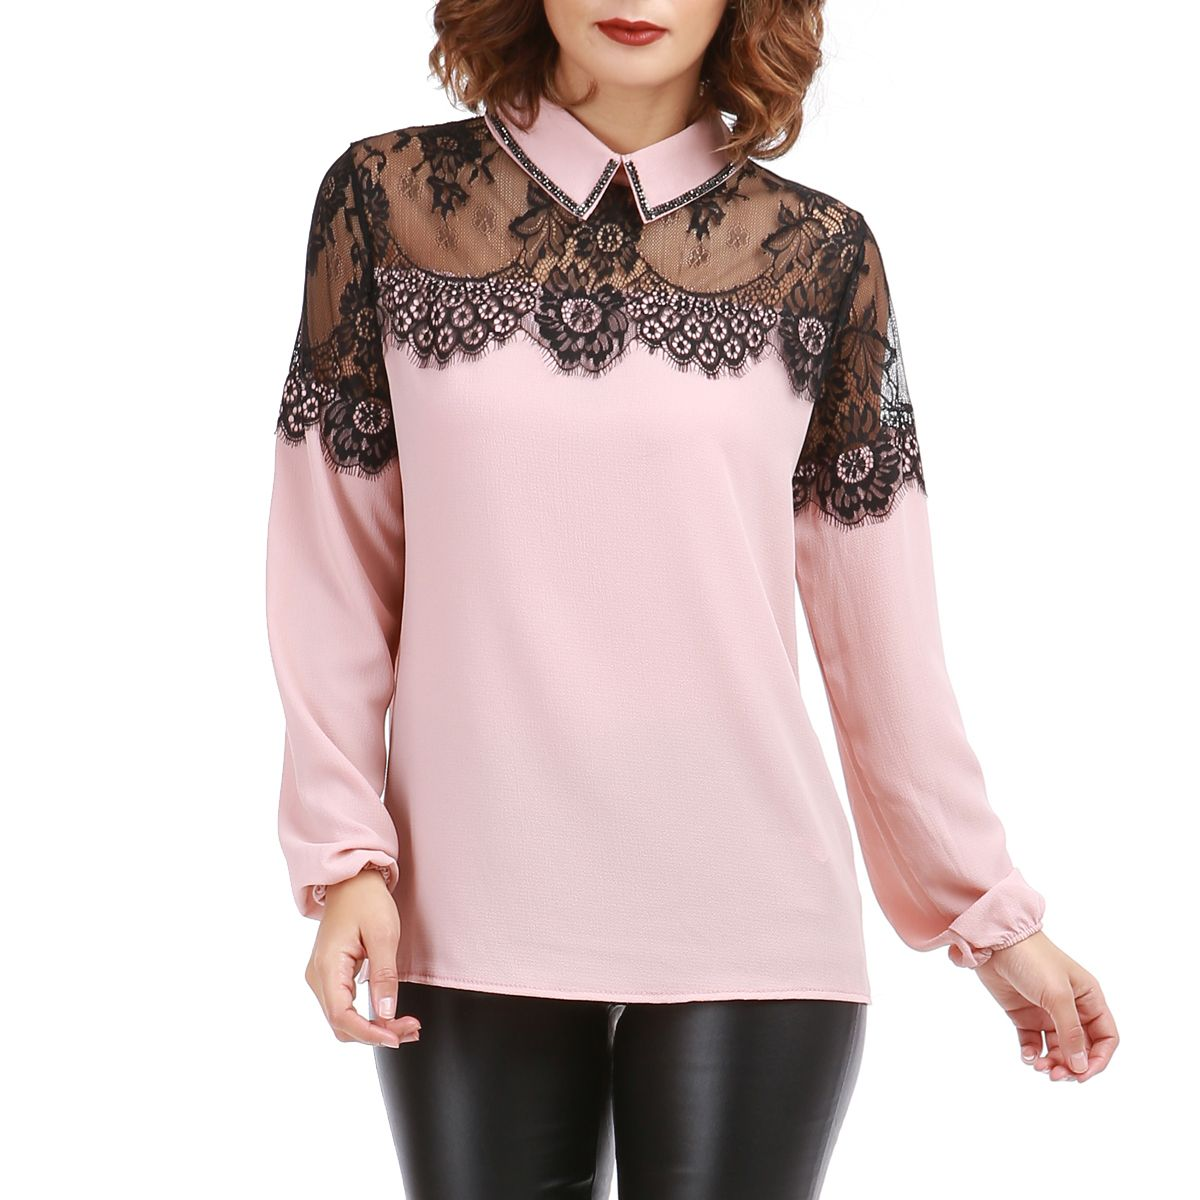 blouse col chemise rose avec ornement dentelle femme pas cher la modeuse. Black Bedroom Furniture Sets. Home Design Ideas